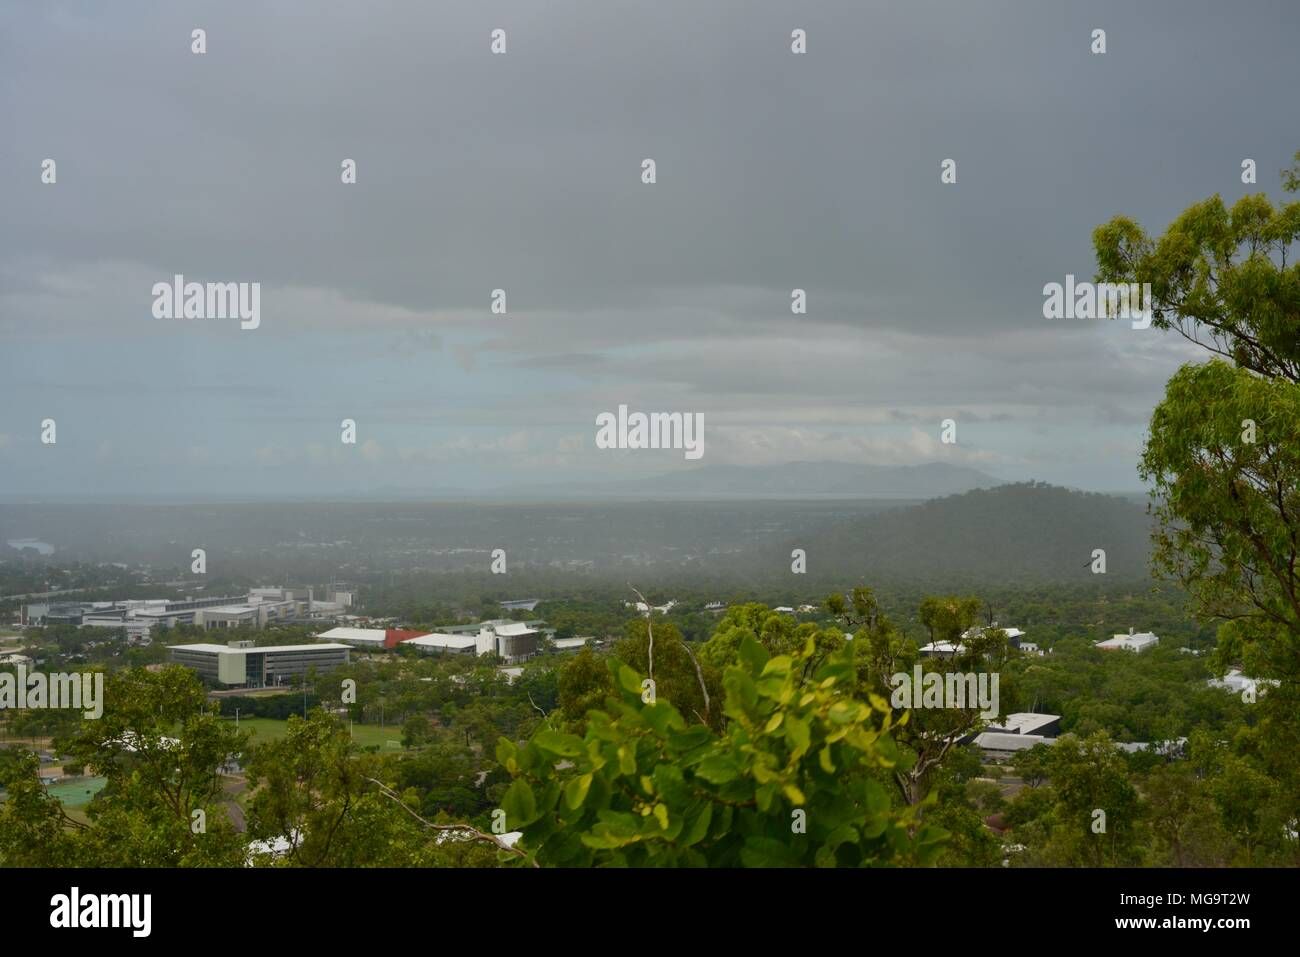 Views of townsville from the Mount Stuart hiking trails, Townsville, Queensland, Australia - Stock Image